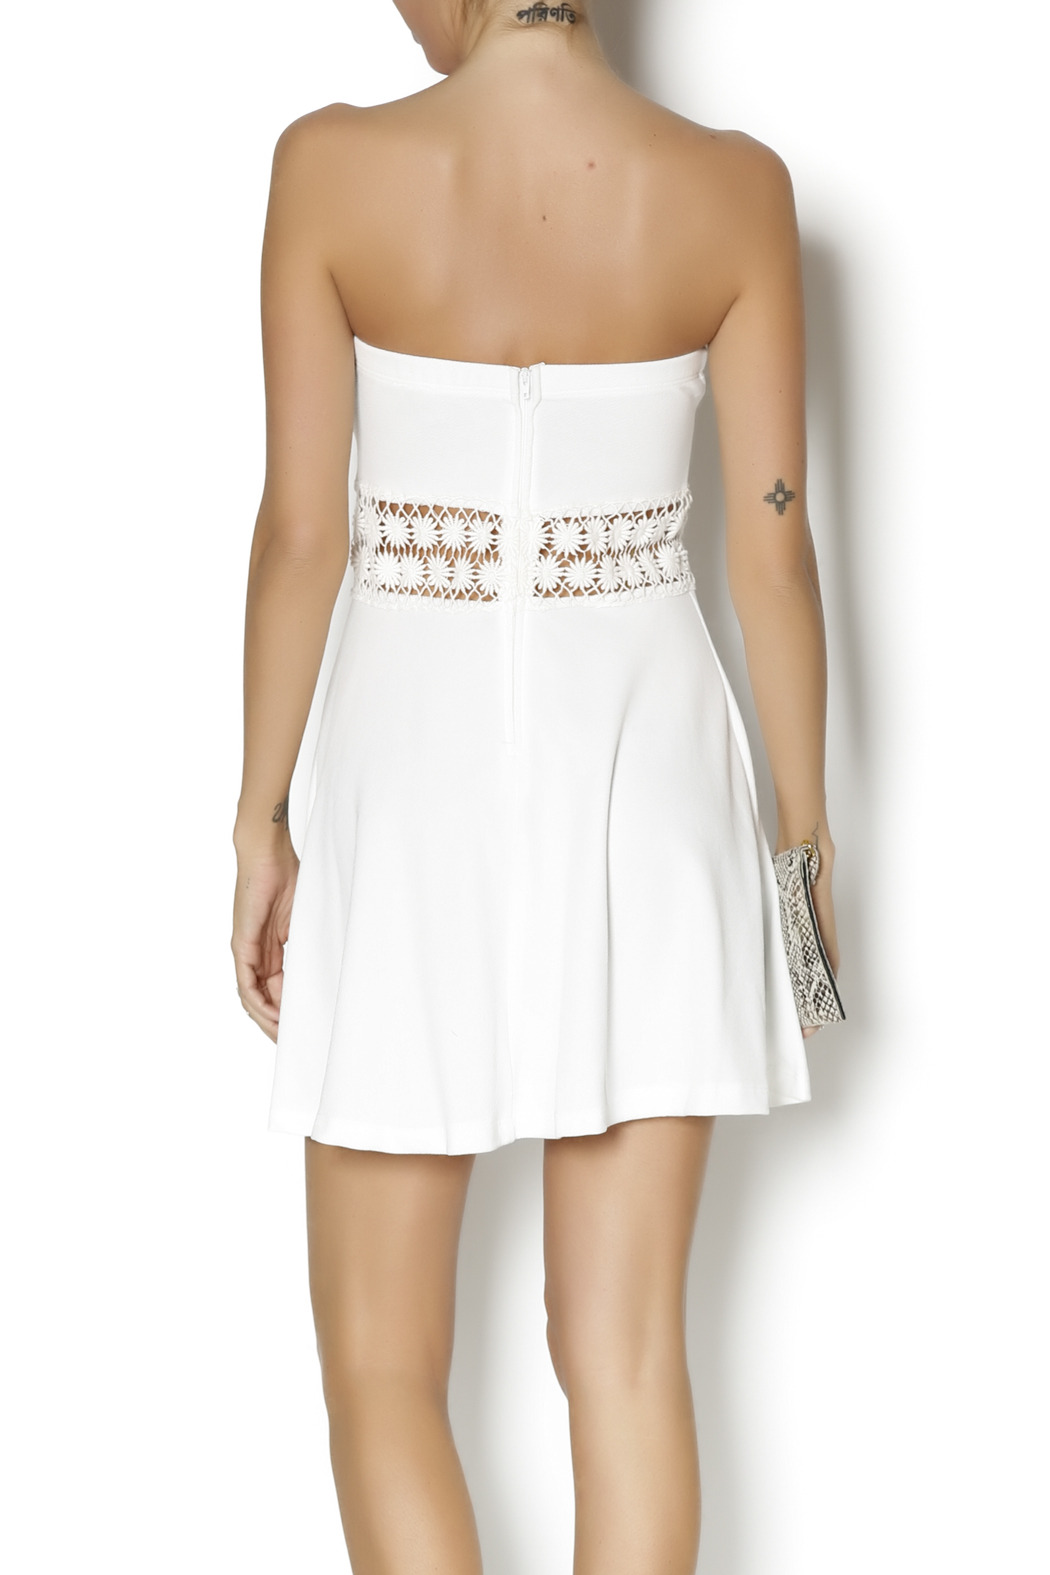 Coveted Clothing Strapless Emily Dress - Back Cropped Image